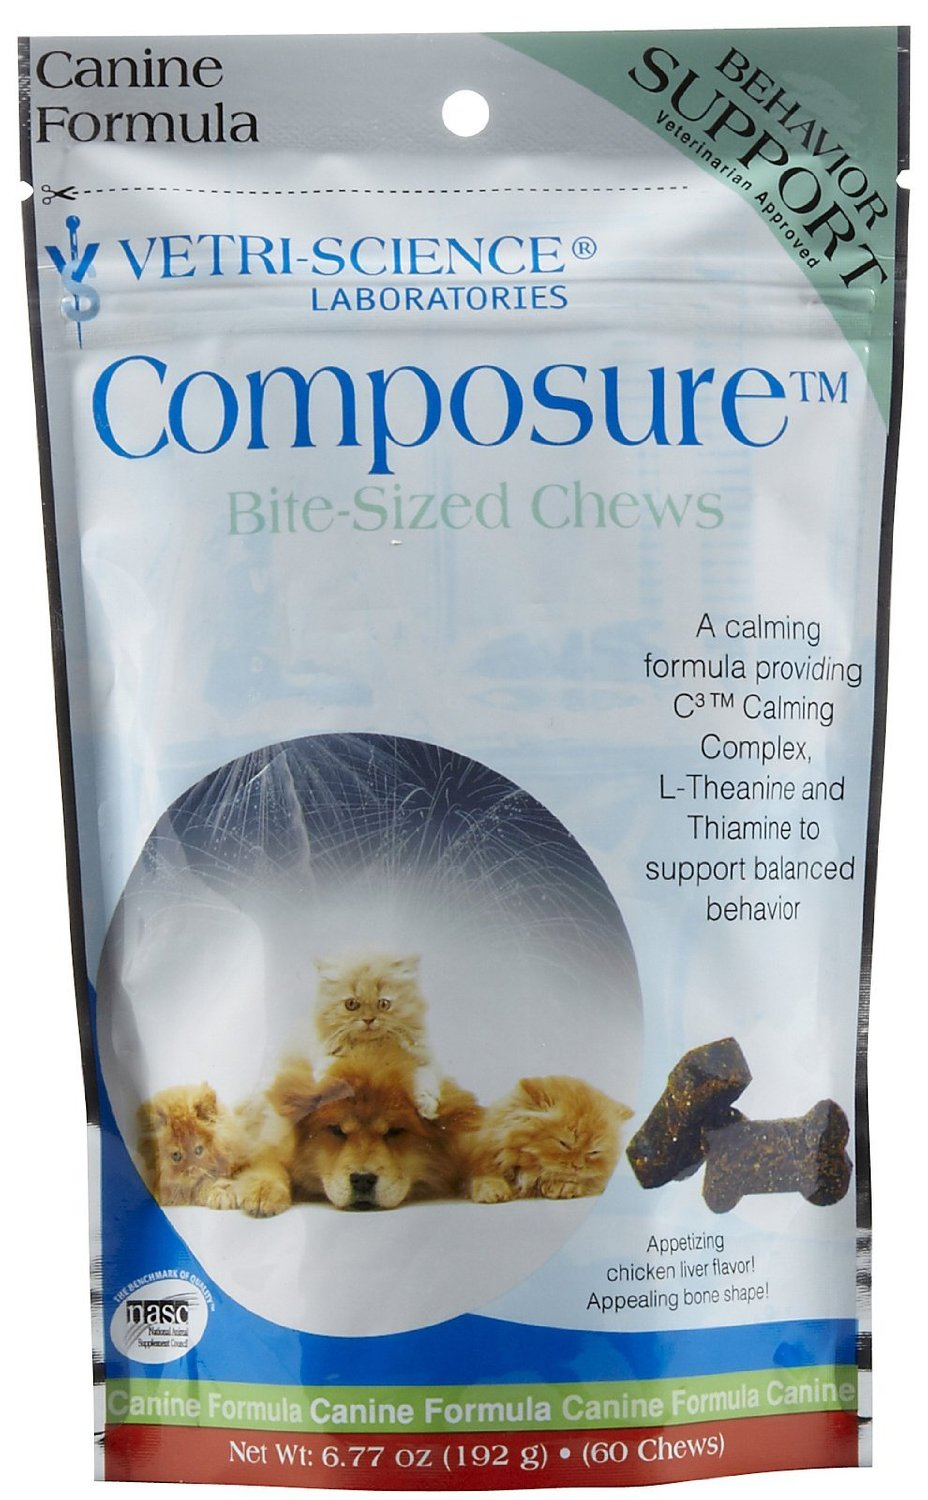 Vetri-Science Composure Bite-Sized Chews